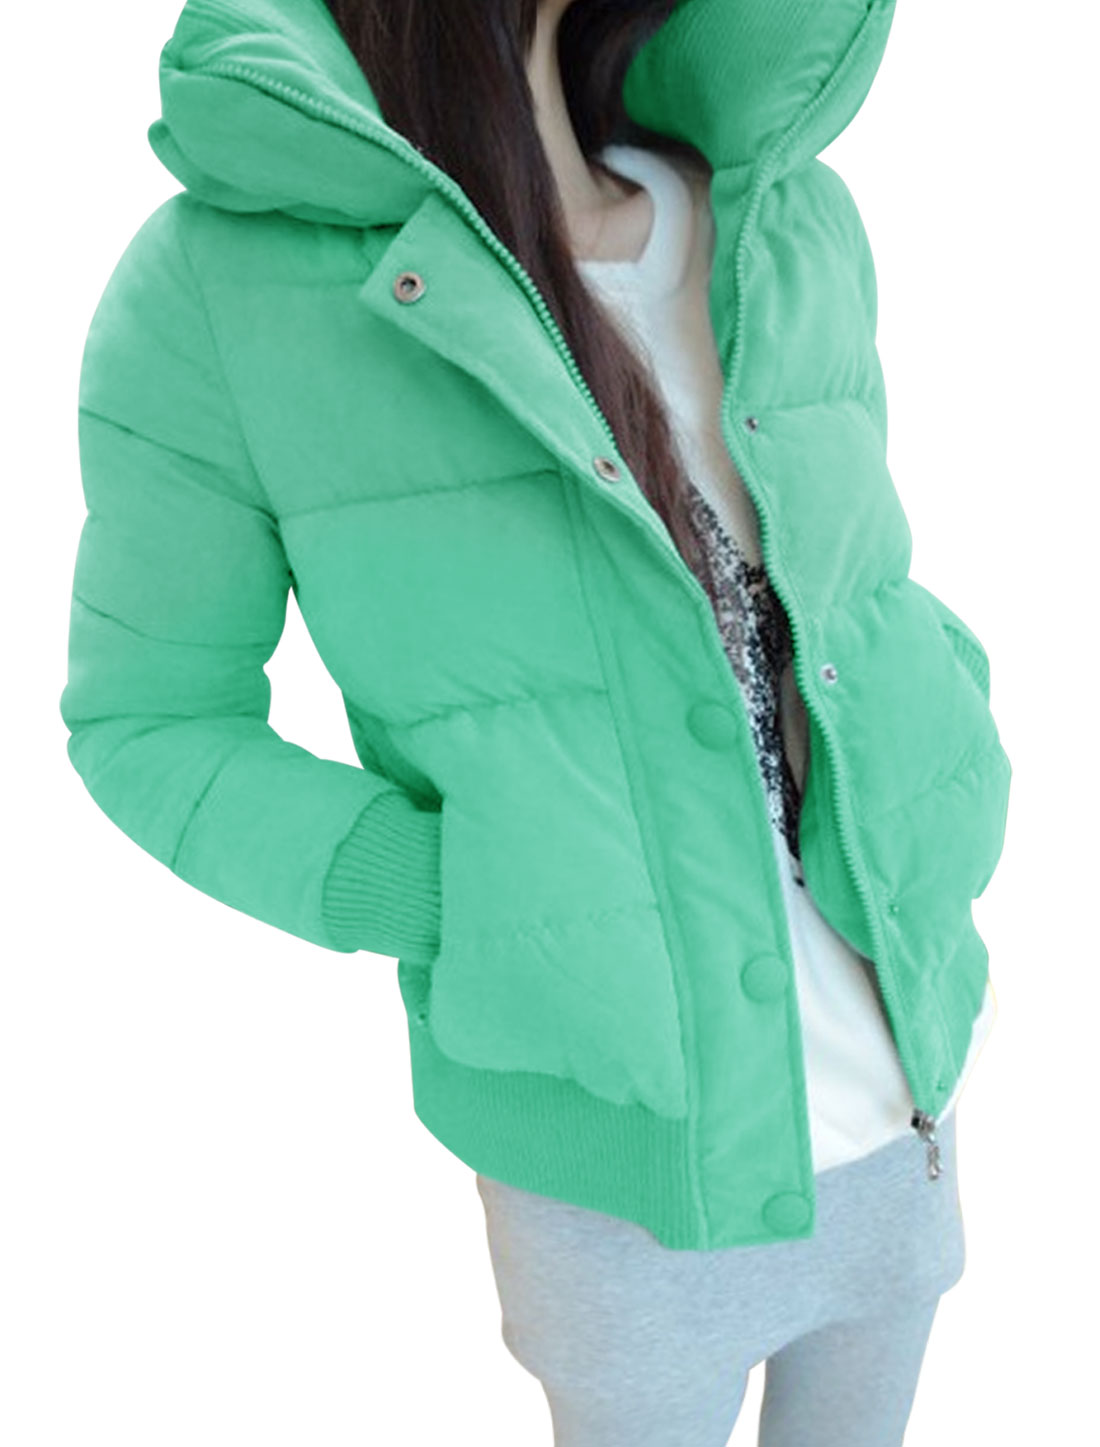 Ladies Mint Convertible Collar Zippered Front Button Closure Coat M